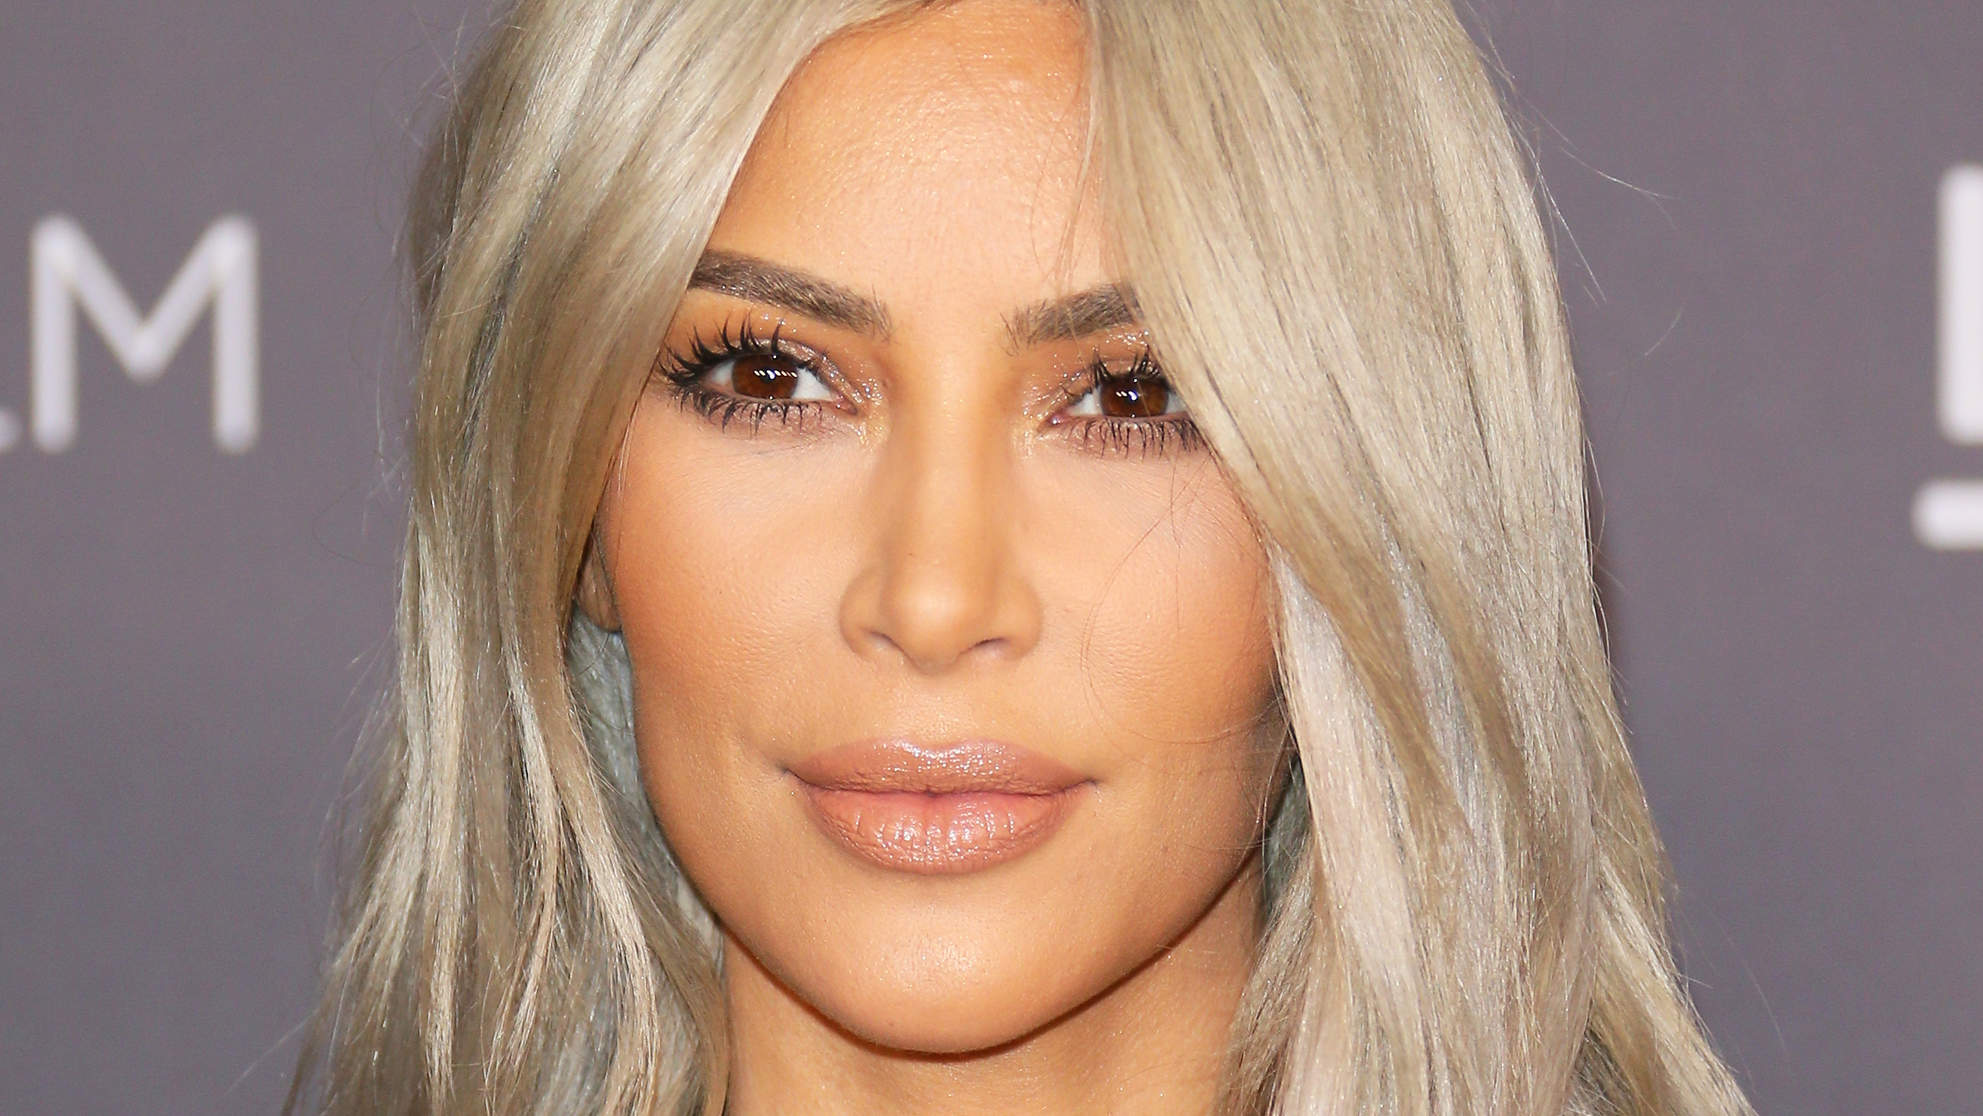 Kim Kardashian West Swears By This $10 Anti-Aging Serum